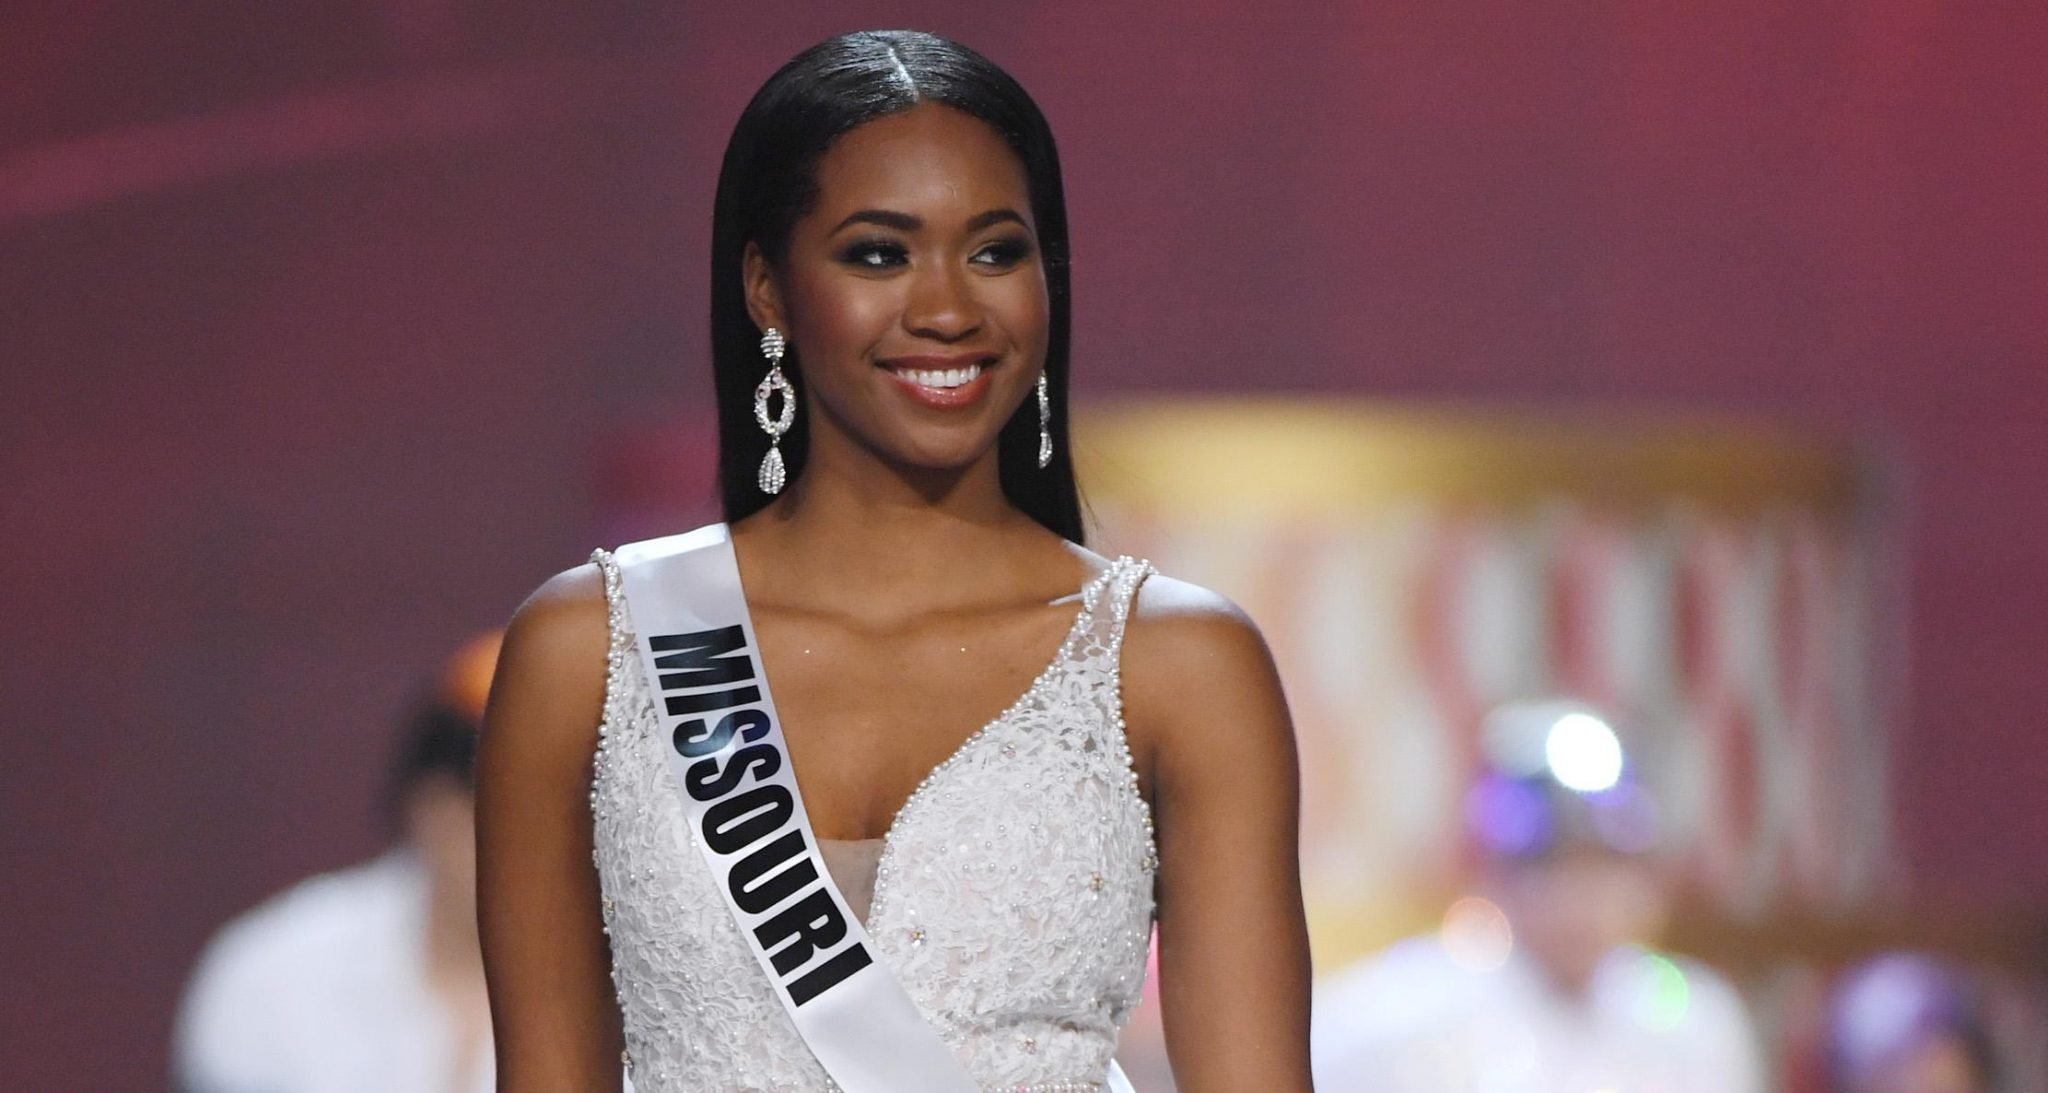 Bayleigh Dayton's Wiki: Miss Missouri Sets her Sights on Big Brother 20!